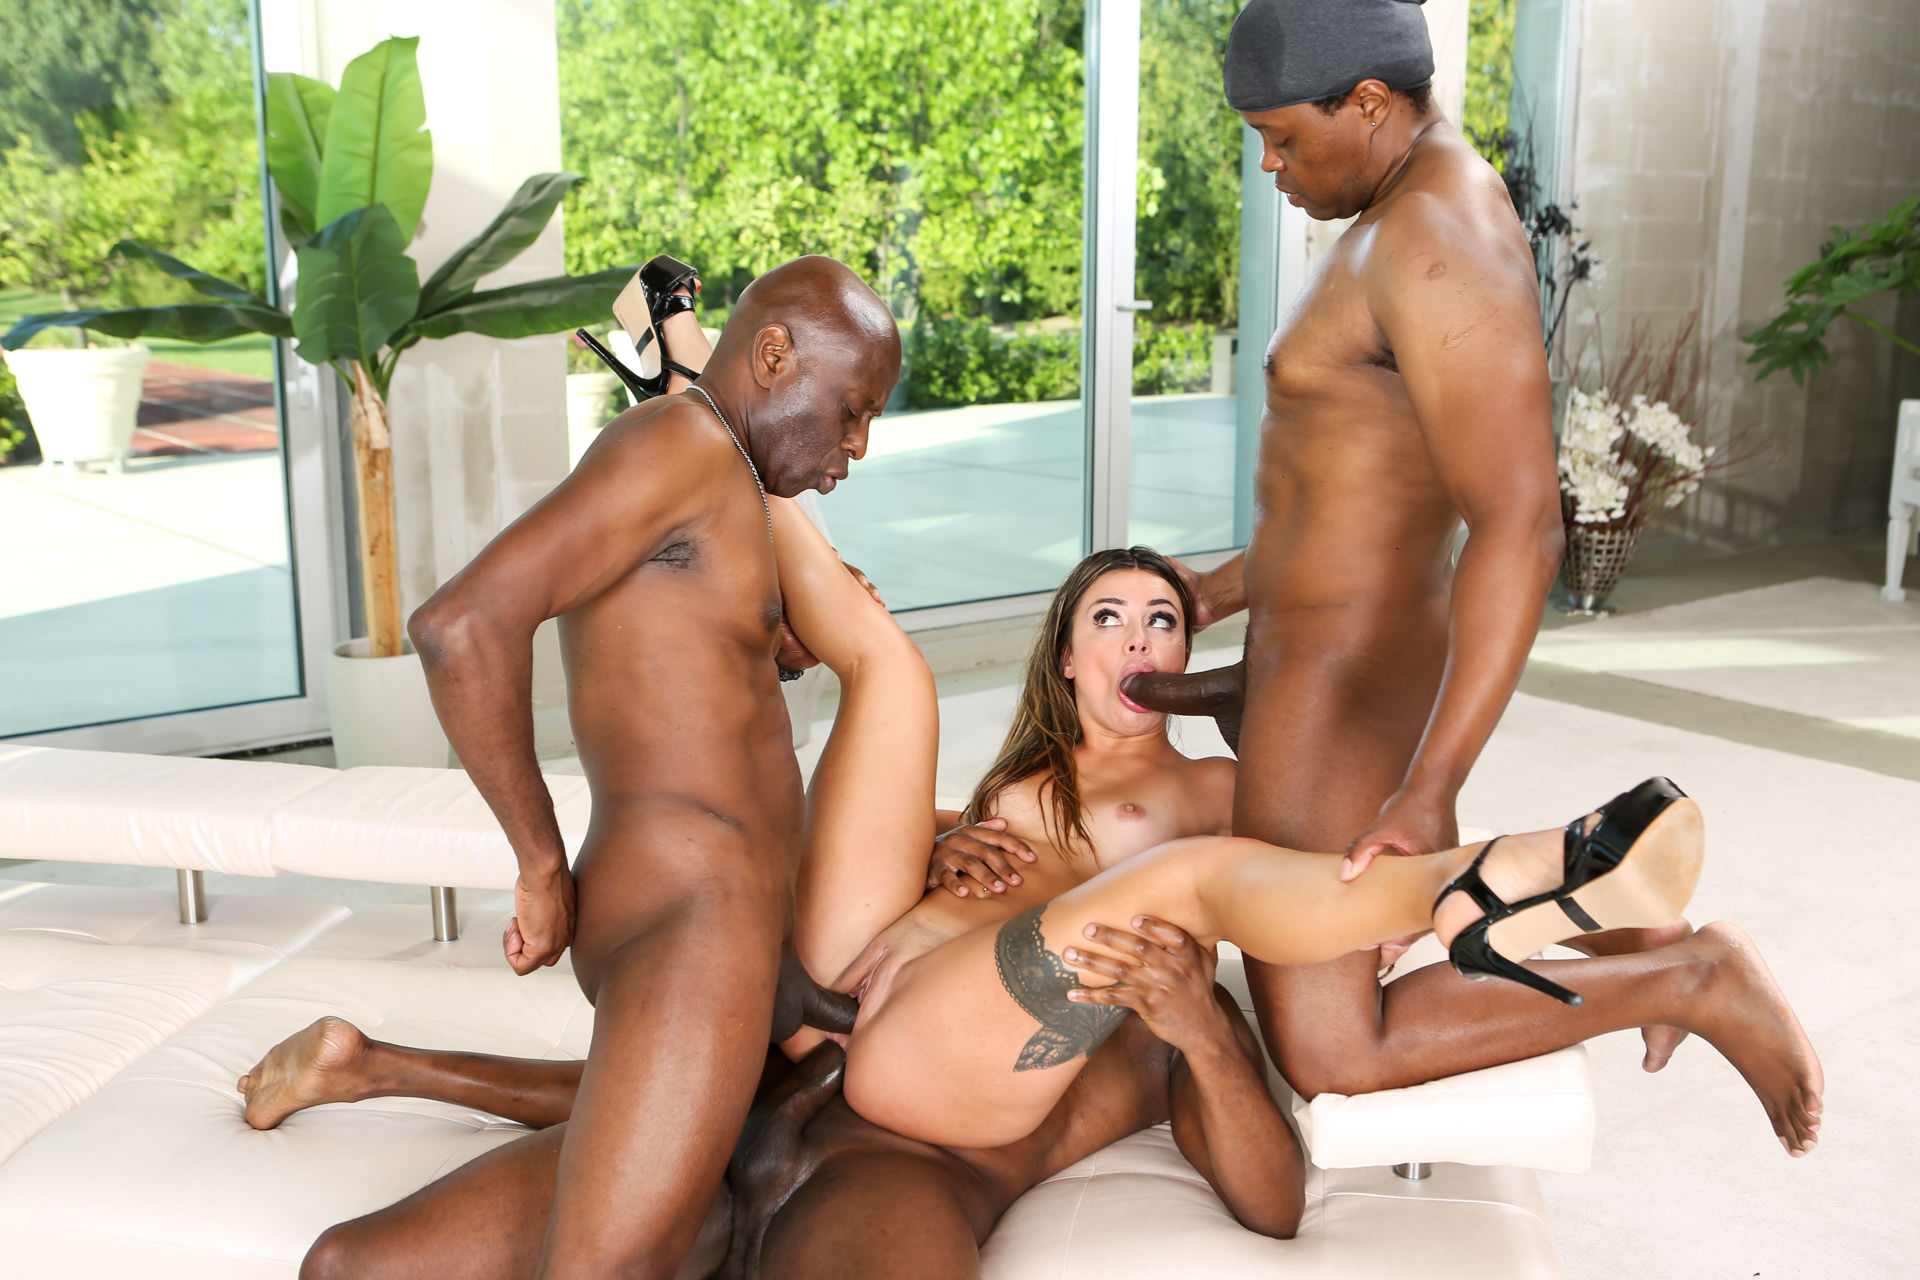 EvilAngel.com - My Name Is Zaawaadi, Scene 02